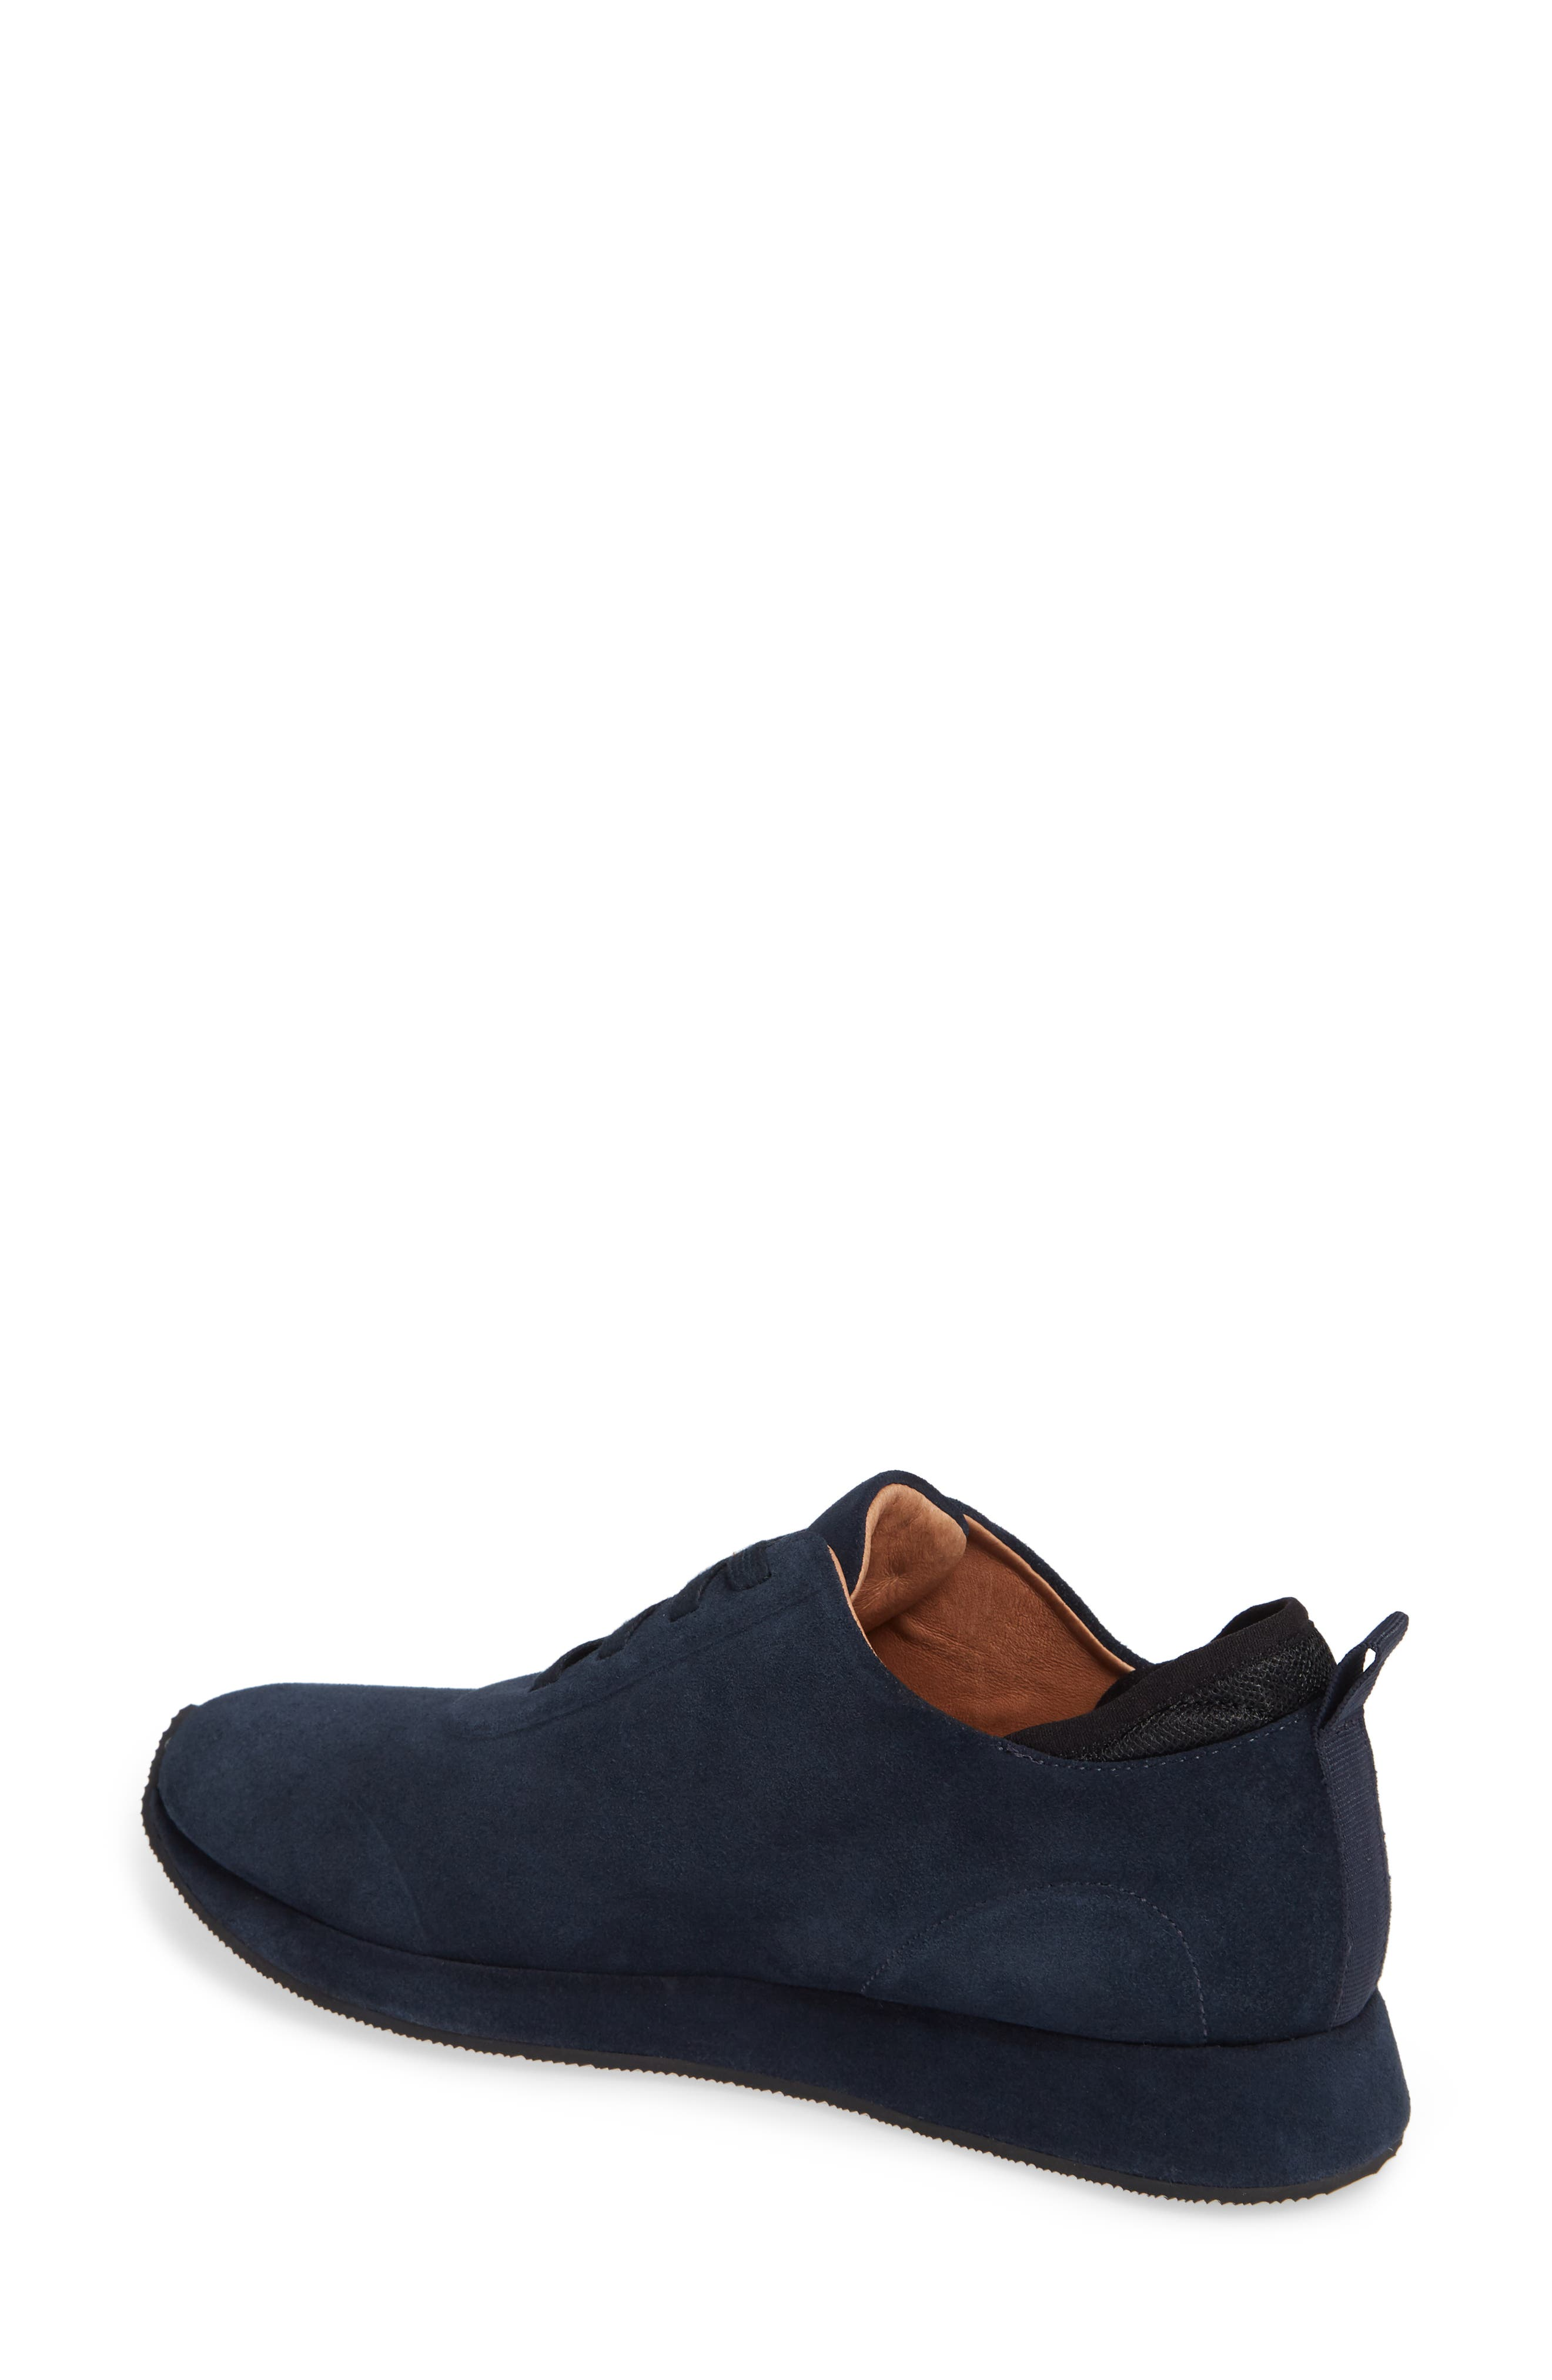 SUDINI,                             Mabel Sneaker,                             Alternate thumbnail 2, color,                             NAVY SUEDE